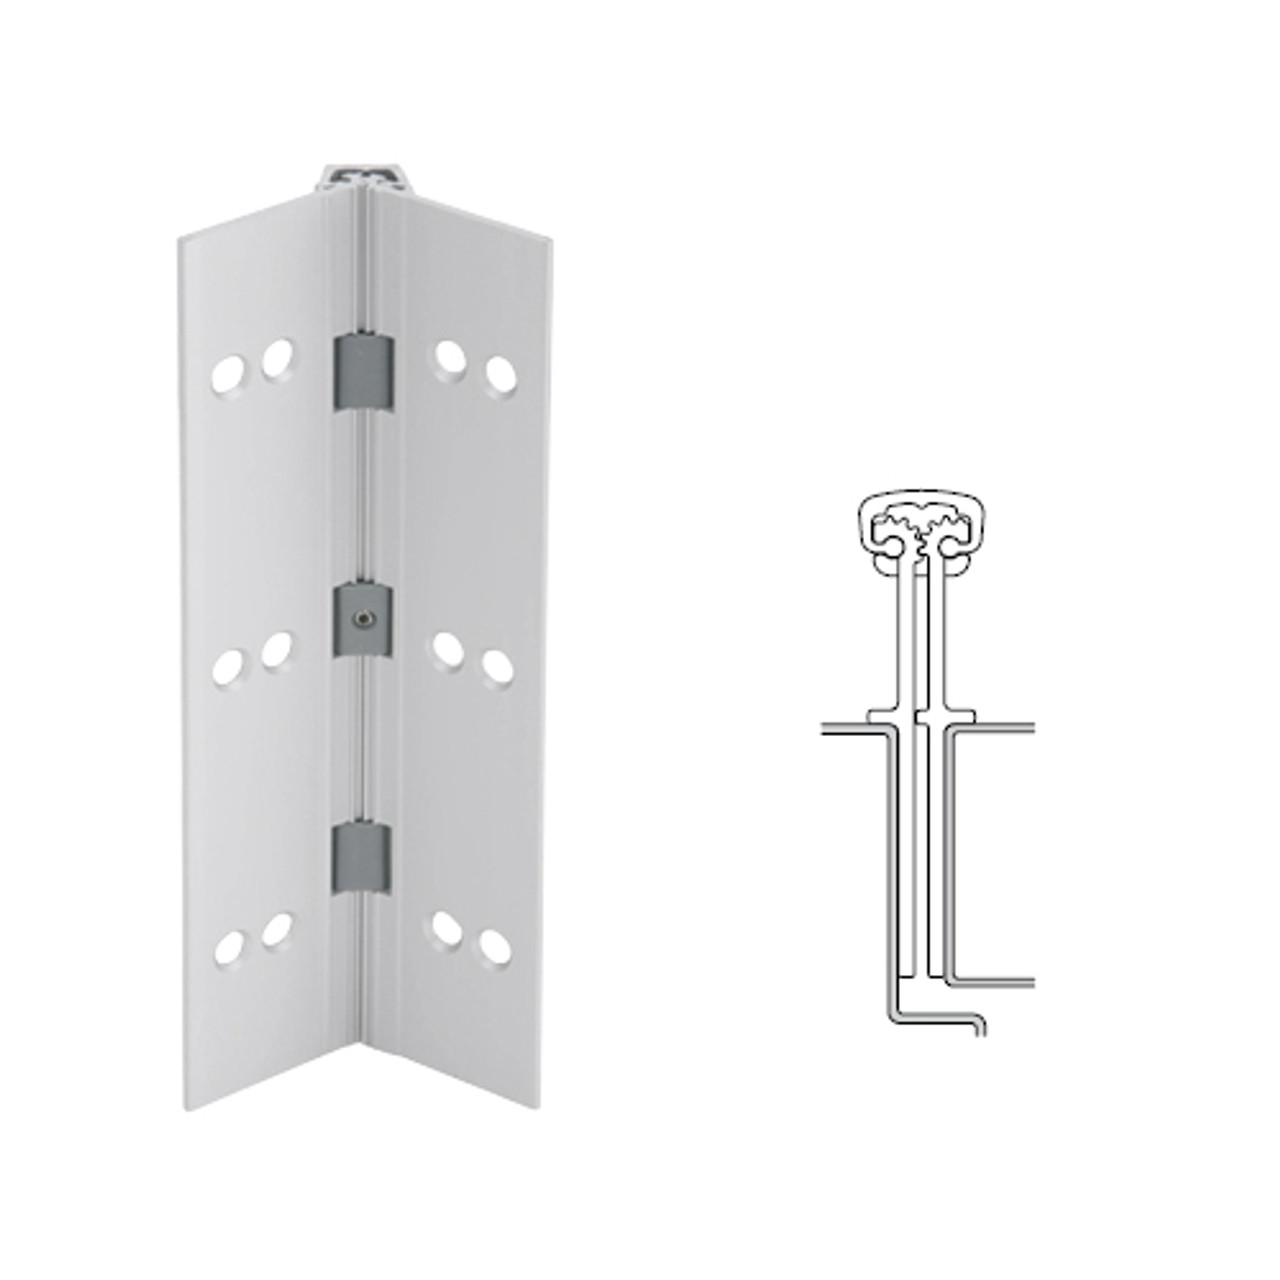 040XY-US28-120-WD IVES Full Mortise Continuous Geared Hinges with Wood Screws in Satin Aluminum